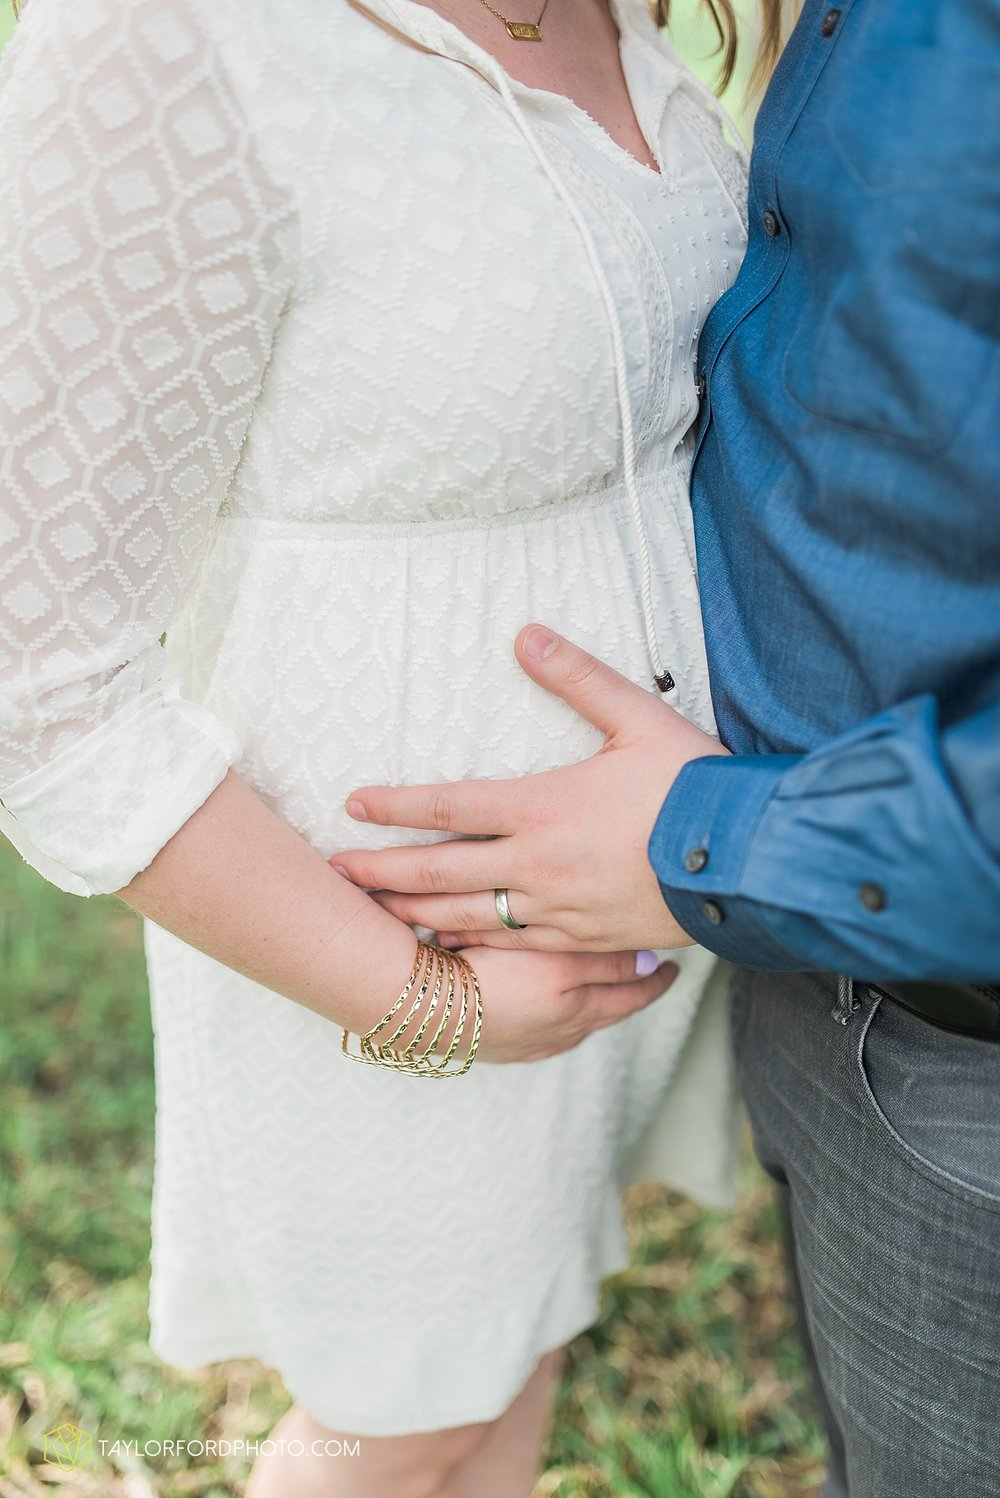 fort-wayne-indiana-maternity-photographer-taylor-ford-photography_1478.jpg